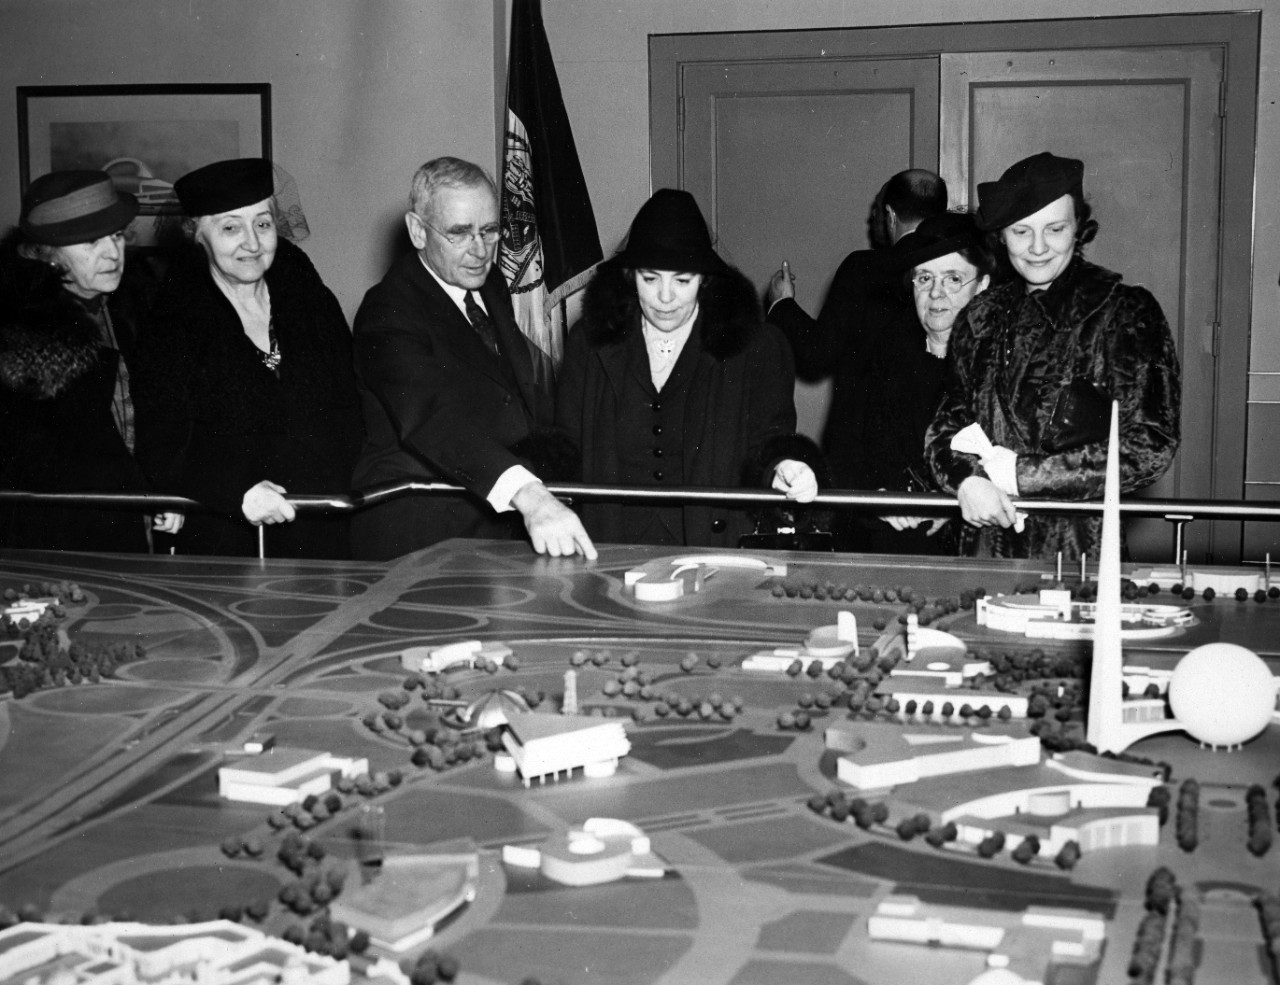 Admiral William H. Standley points out a feature on the miniature model of the 1939 World's Fair in New York City.